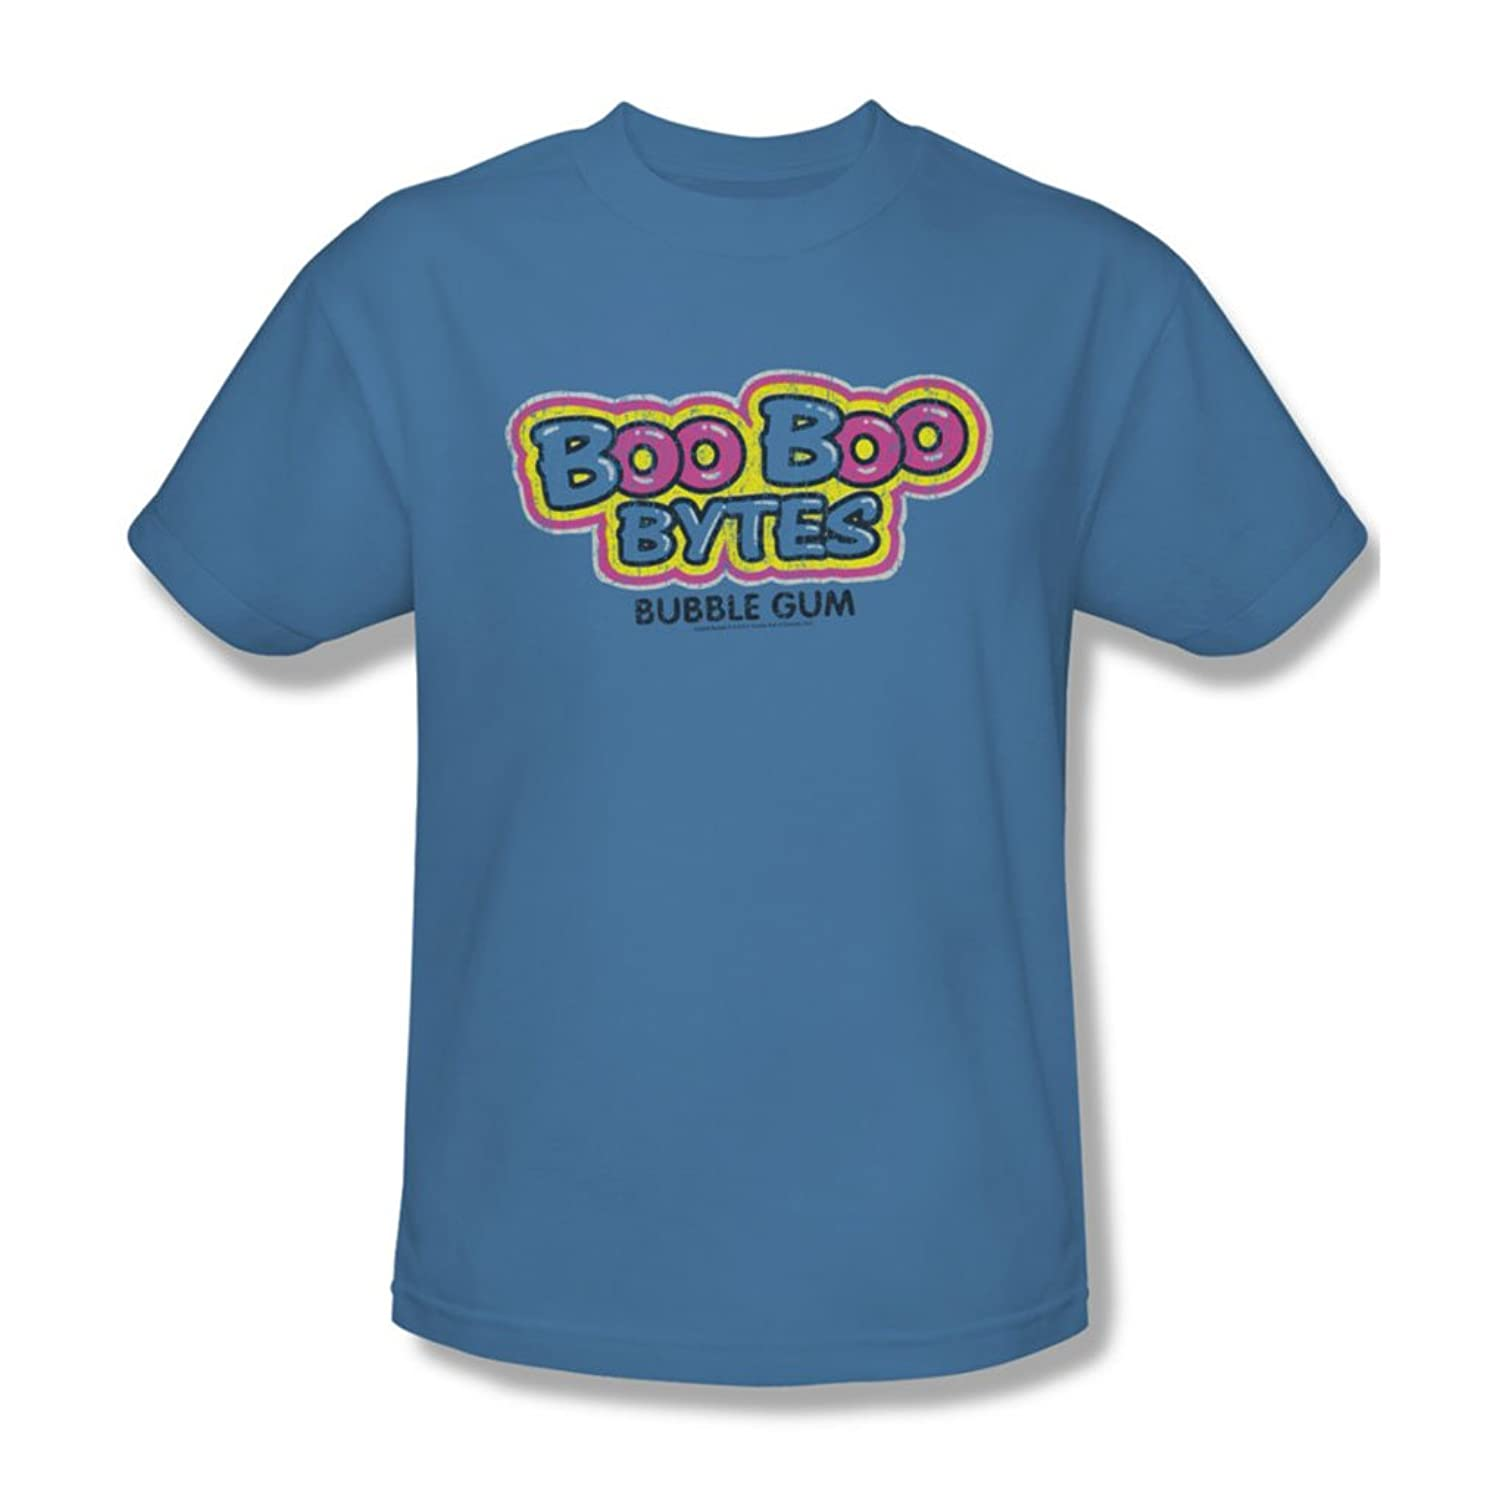 Dubble Bubble - Mens Boo Boo T-Shirt